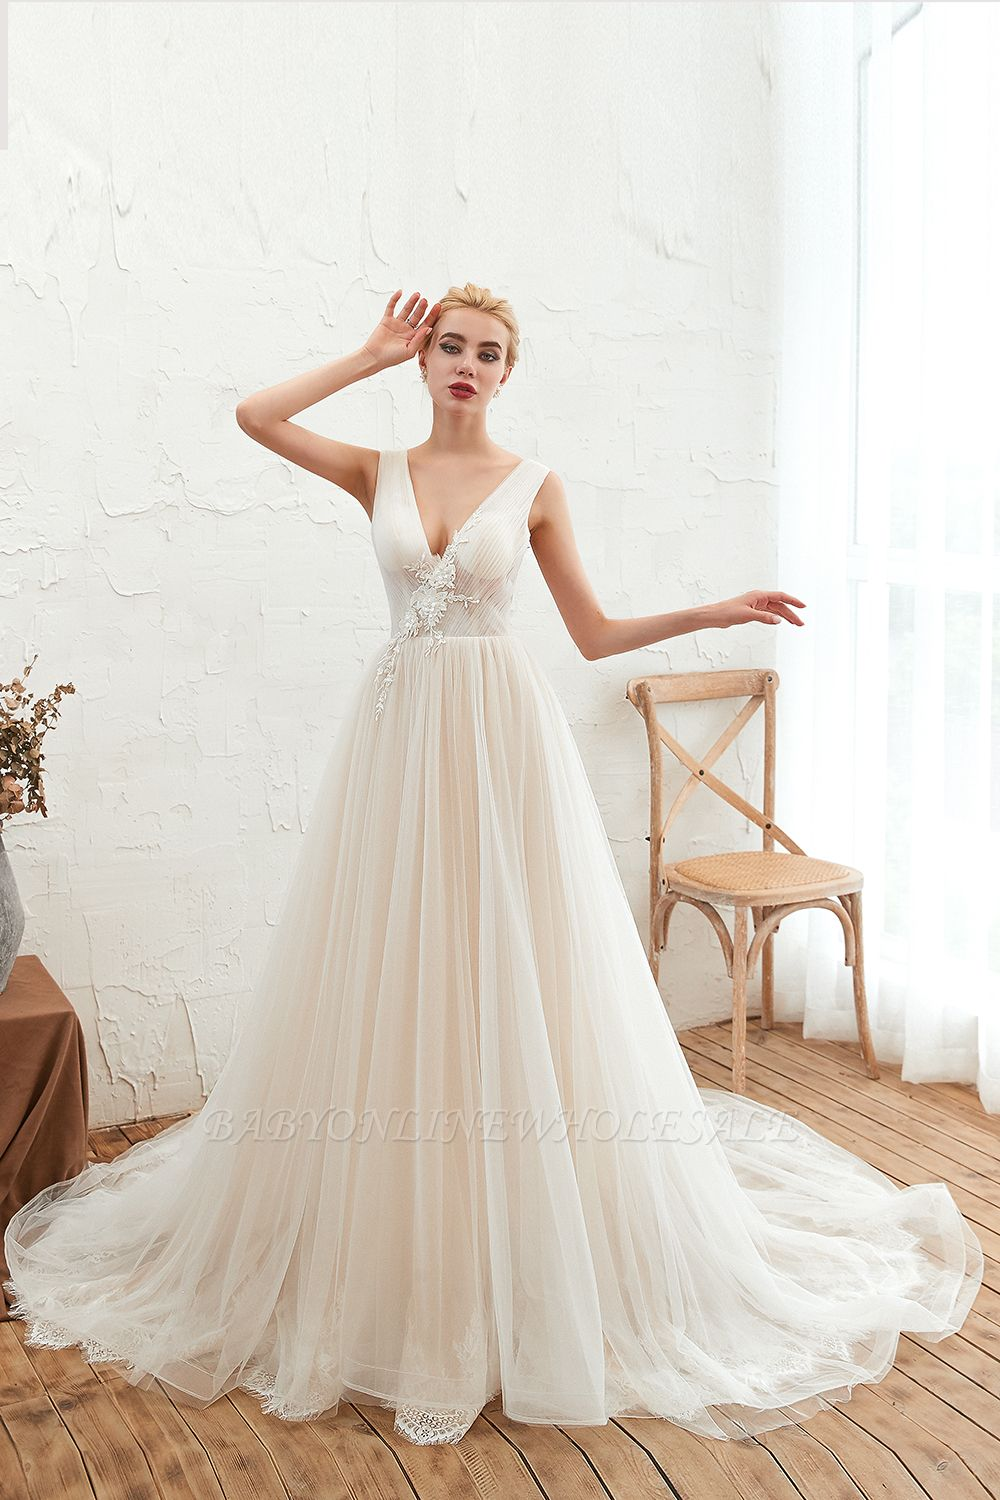 Champange Princess Tulle Wedding Dress with Soft Pleats | Sexy V-neck Low Back Bridal Gowns with Lace Appliques